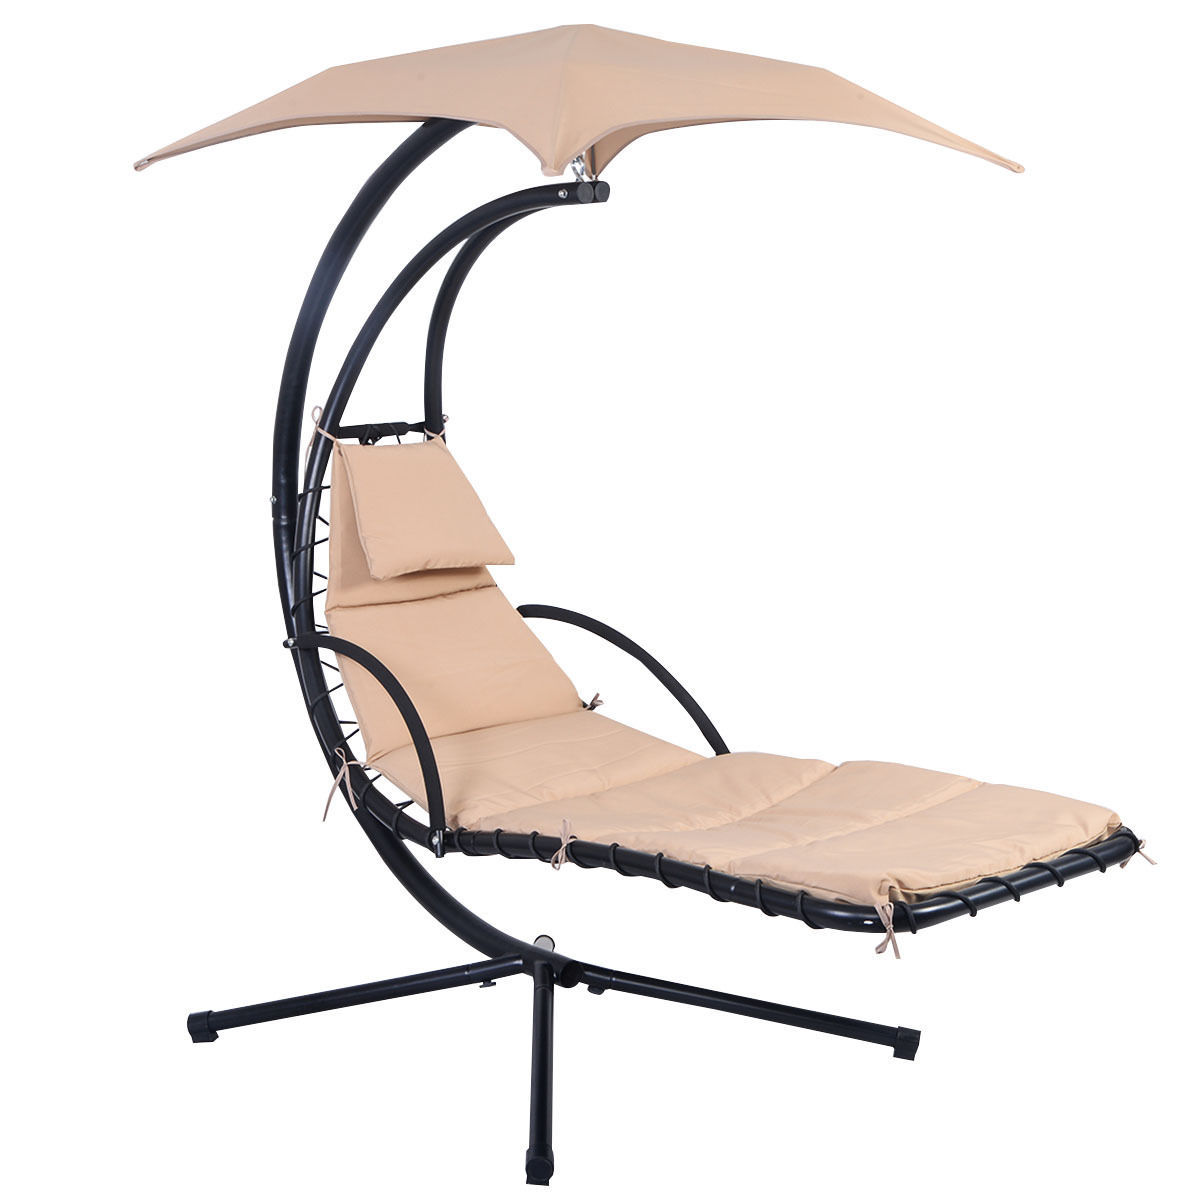 Hanging Chaise Swing Hammock Chair With Canopy For Lounge